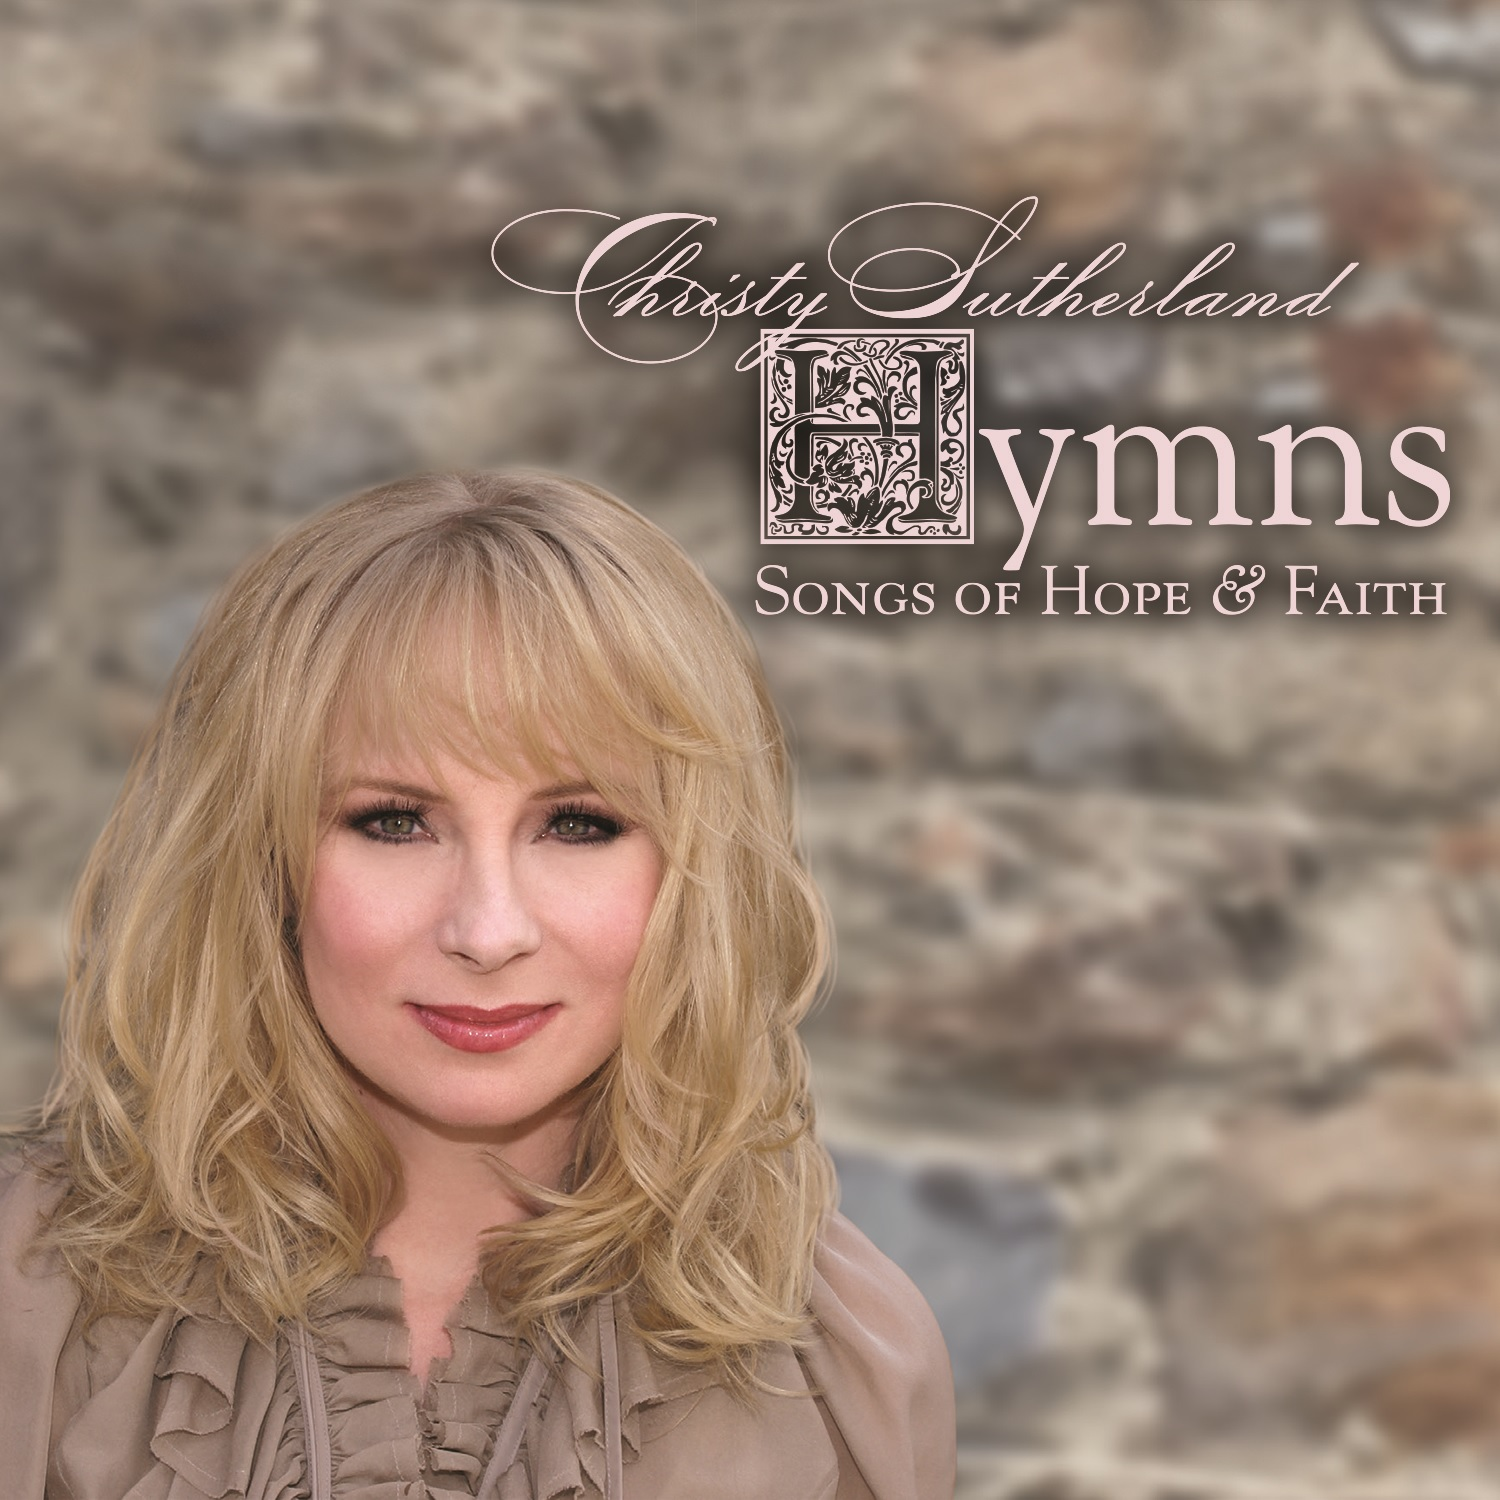 Christy Sutherland - Hymns, Songs of Hope & Faith